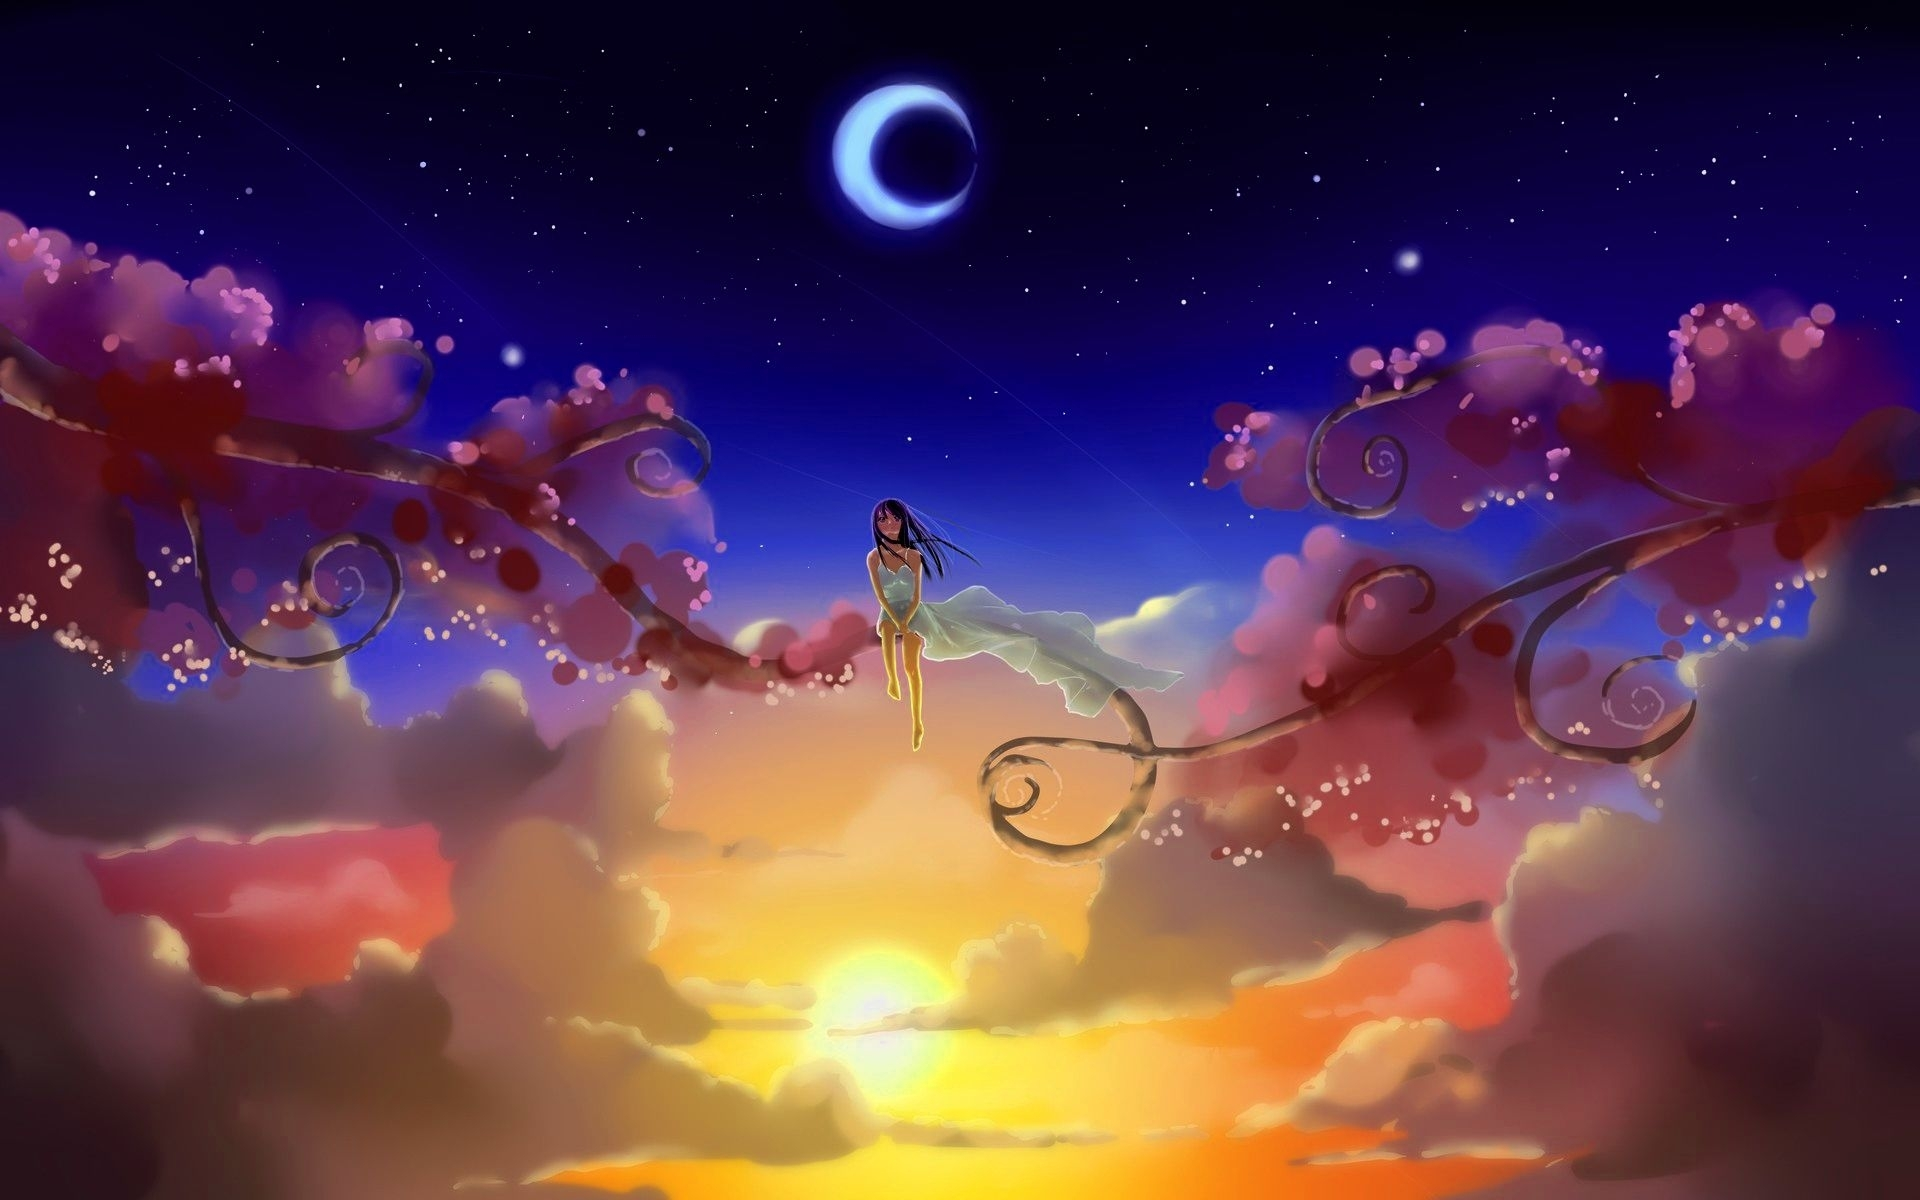 sun moon wallpapers, gallery of 44 sun moon backgrounds, wallpapers